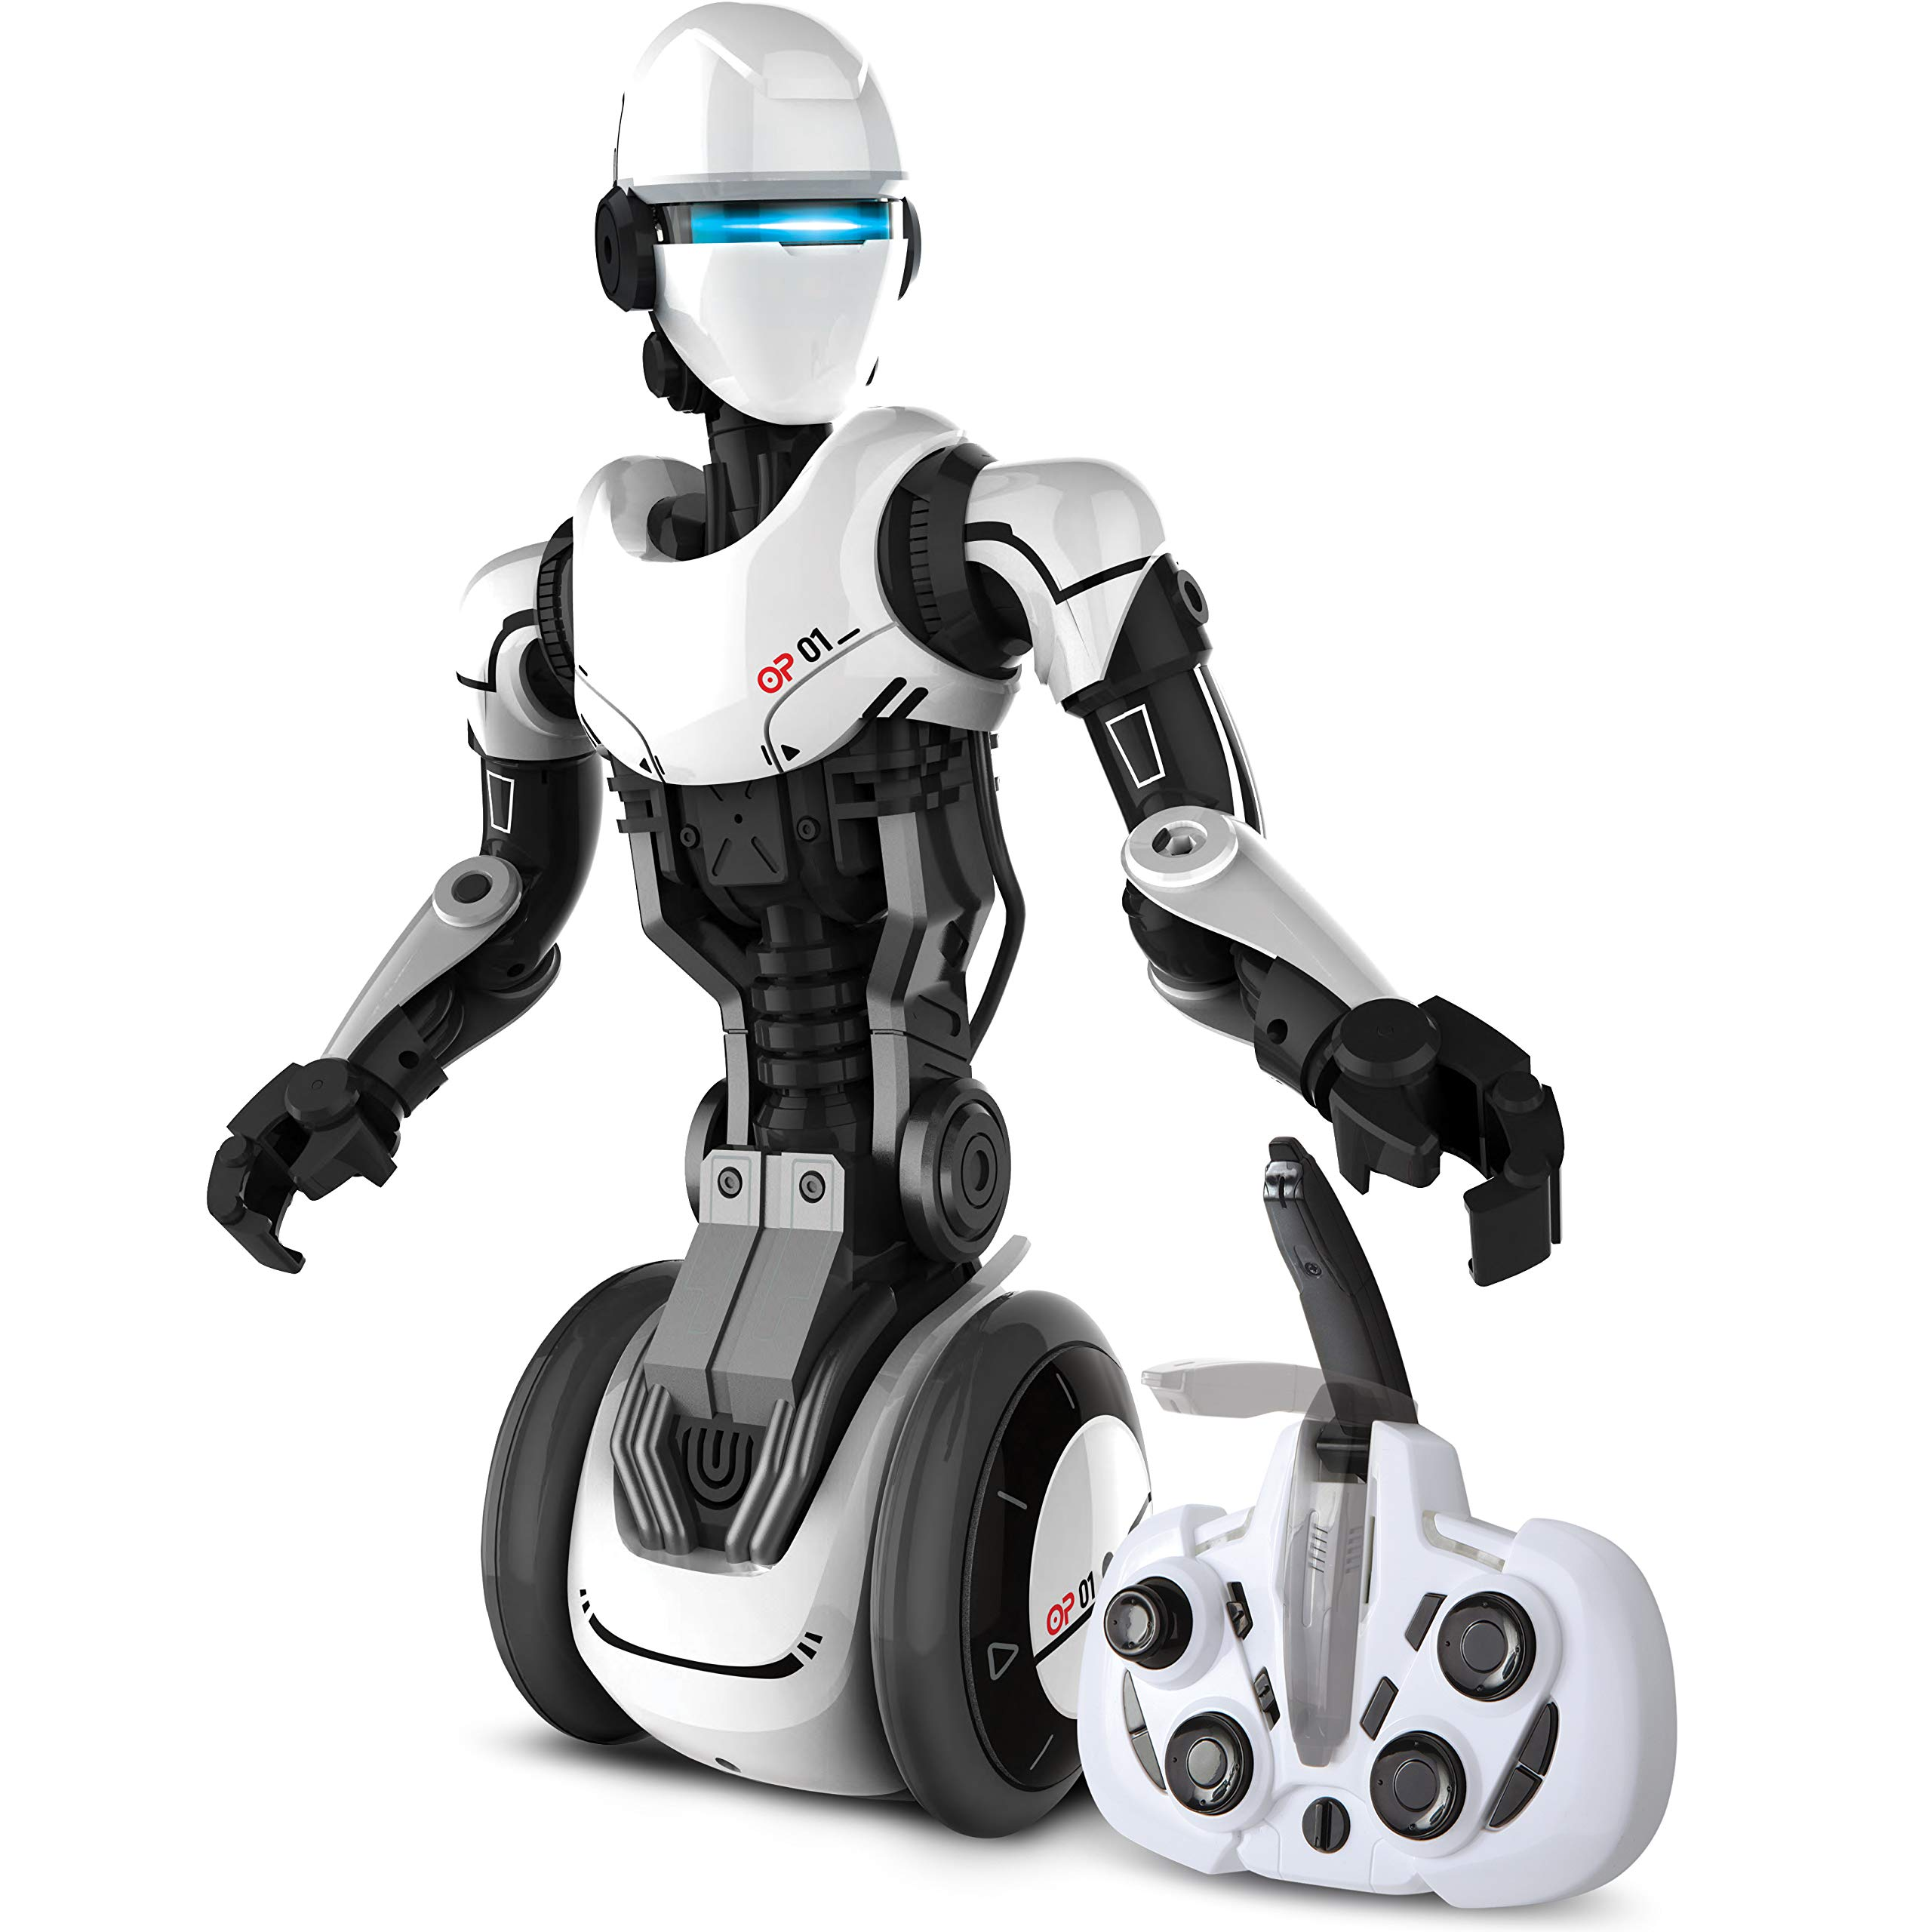 Sharper Image Humanoid Gripping Directional